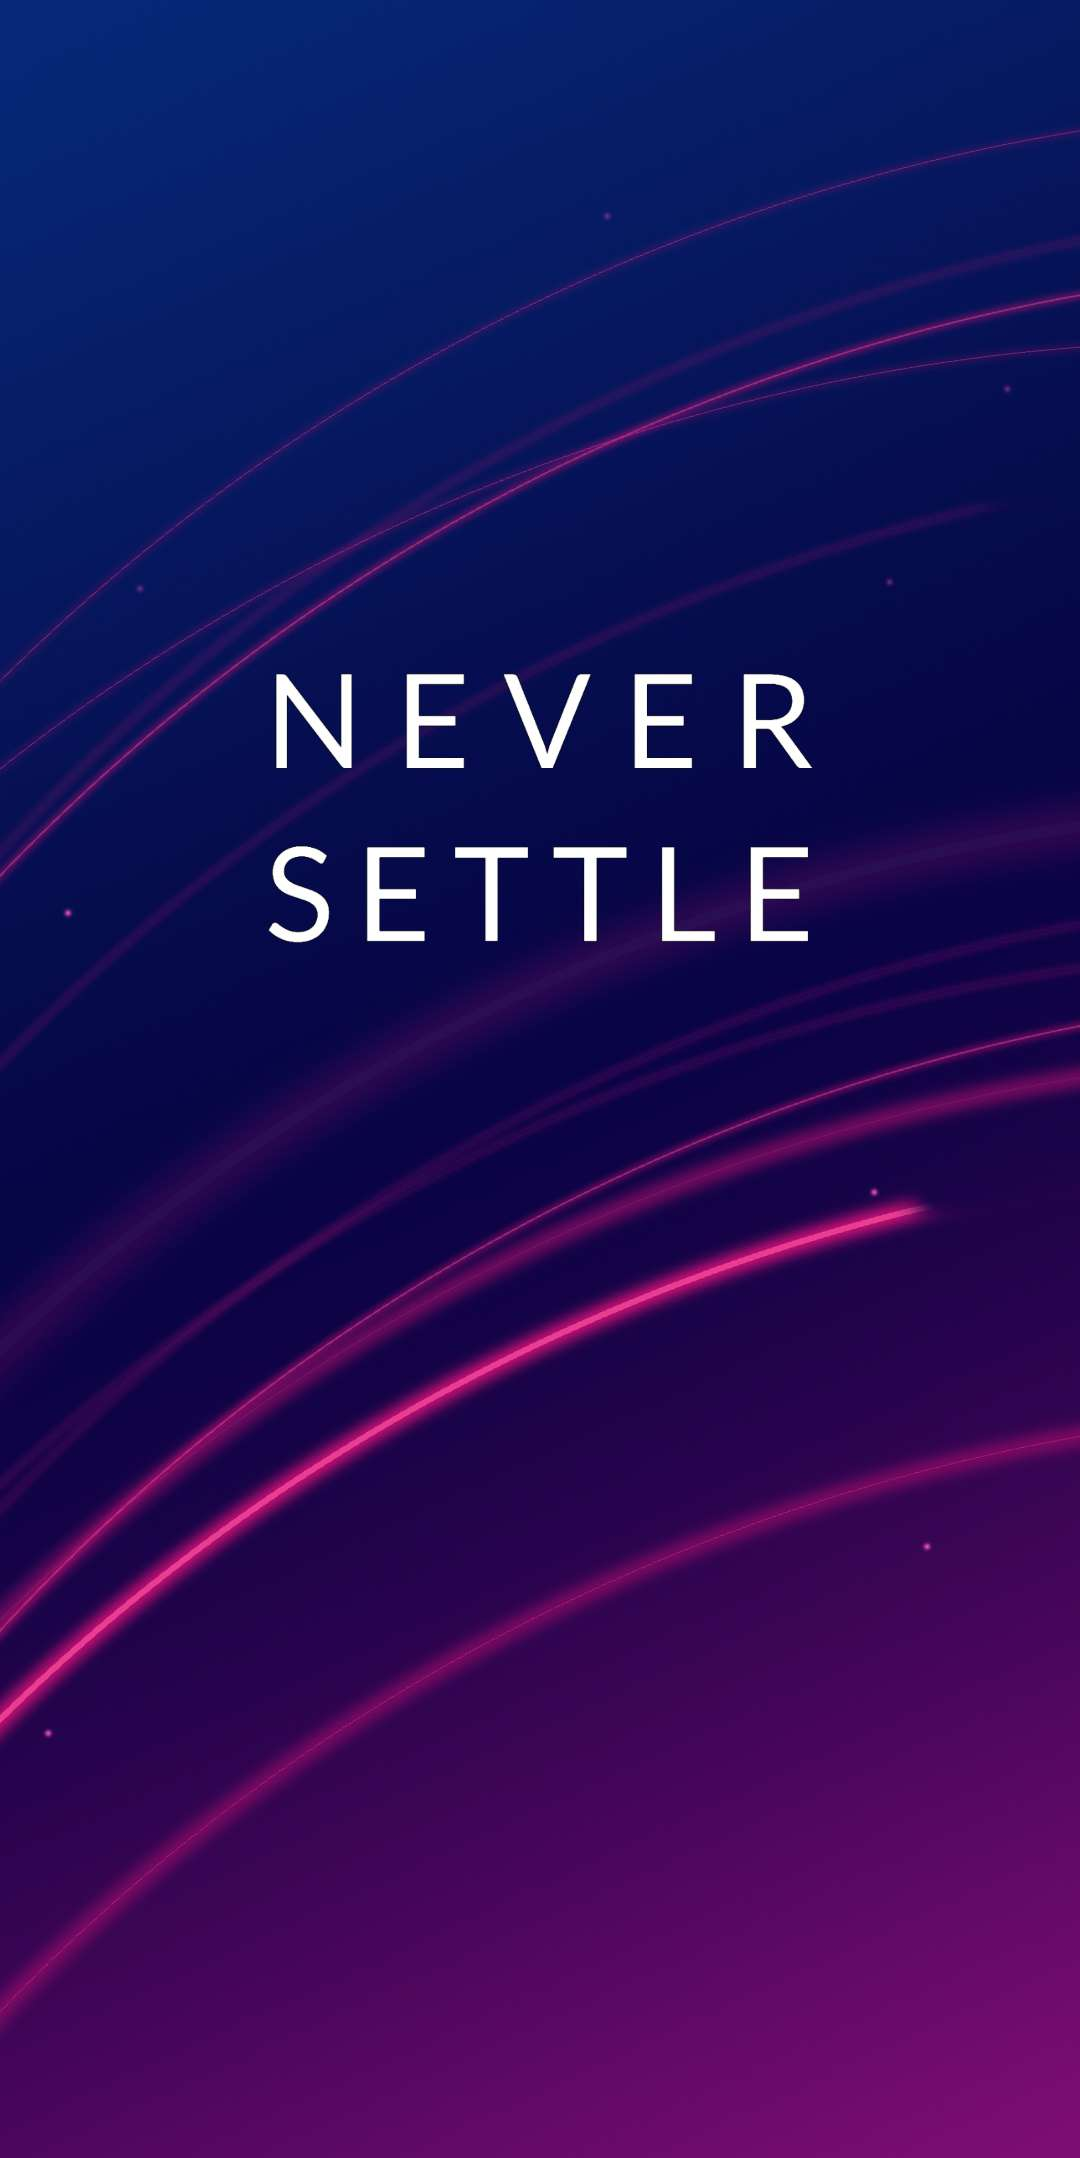 Iphone Wallpapers Com Never Settle Hd Iphone Wallpaper Iphone Wallpapers